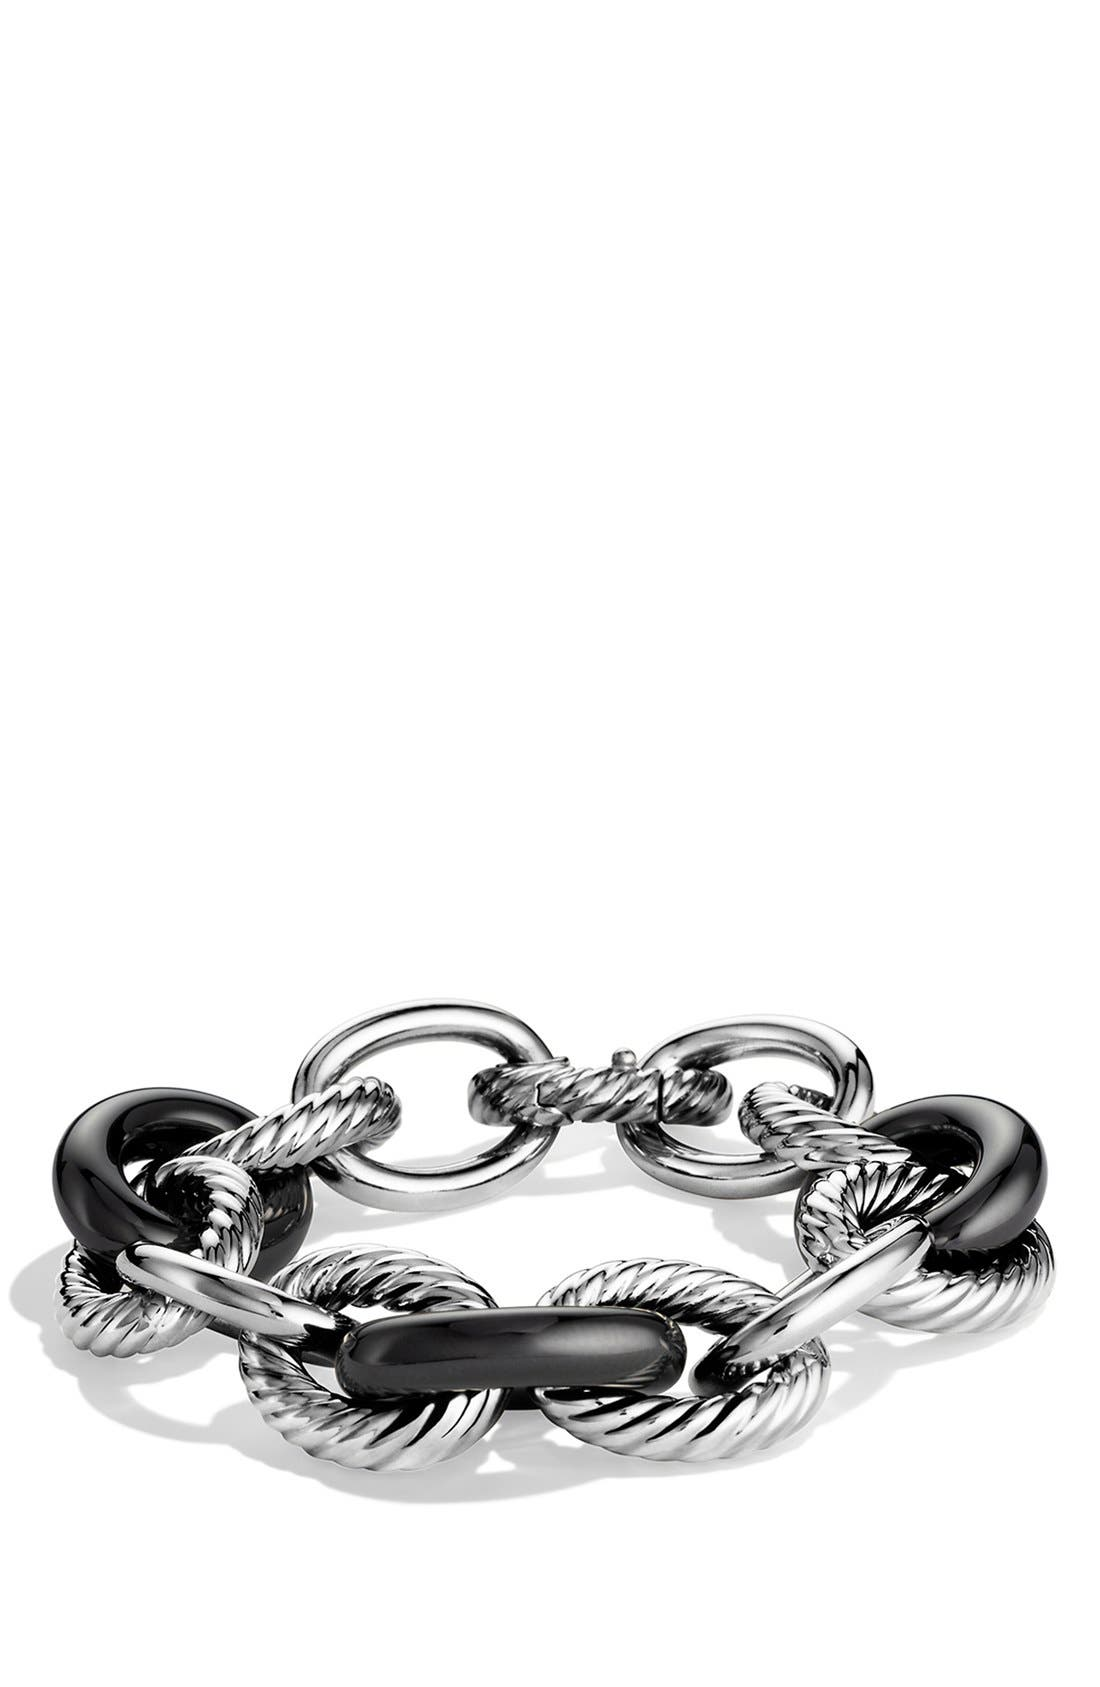 David Yurman 'Oval' Extra-Large Ceramic Link Bracelet